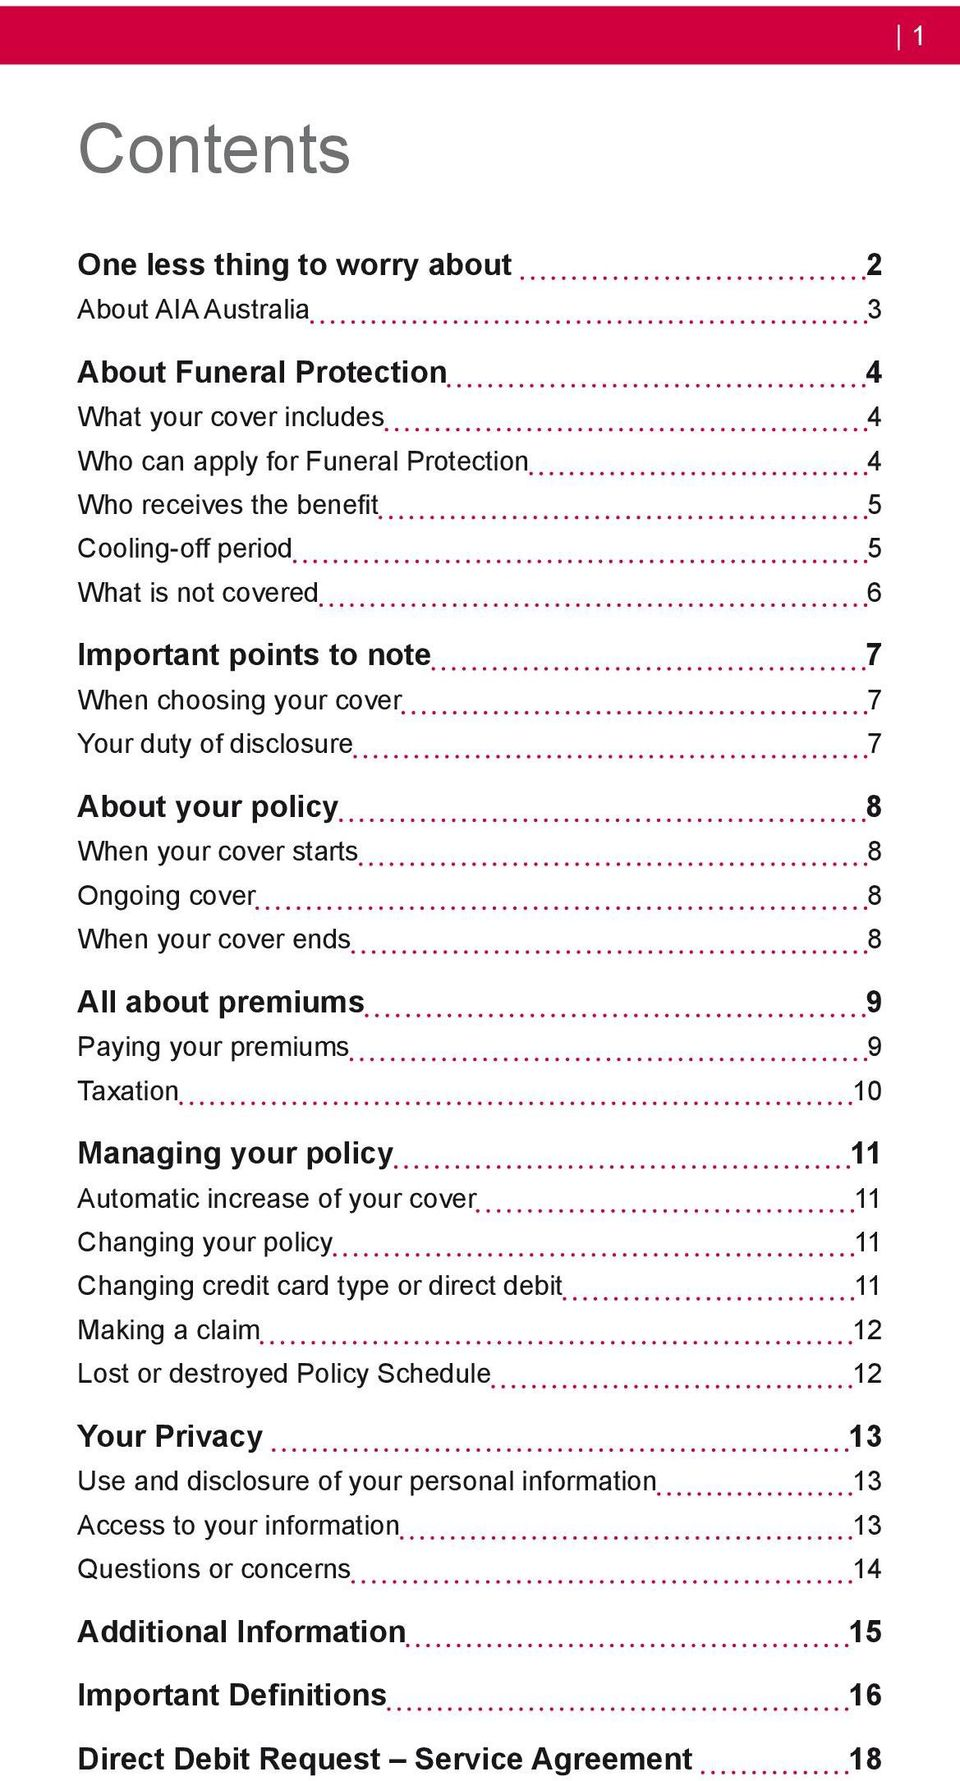 about premiums 9 Paying your premiums 9 Taxation 10 Managing your policy 11 Automatic increase of your cover 11 Changing your policy 11 Changing credit card type or direct debit 11 Making a claim 12